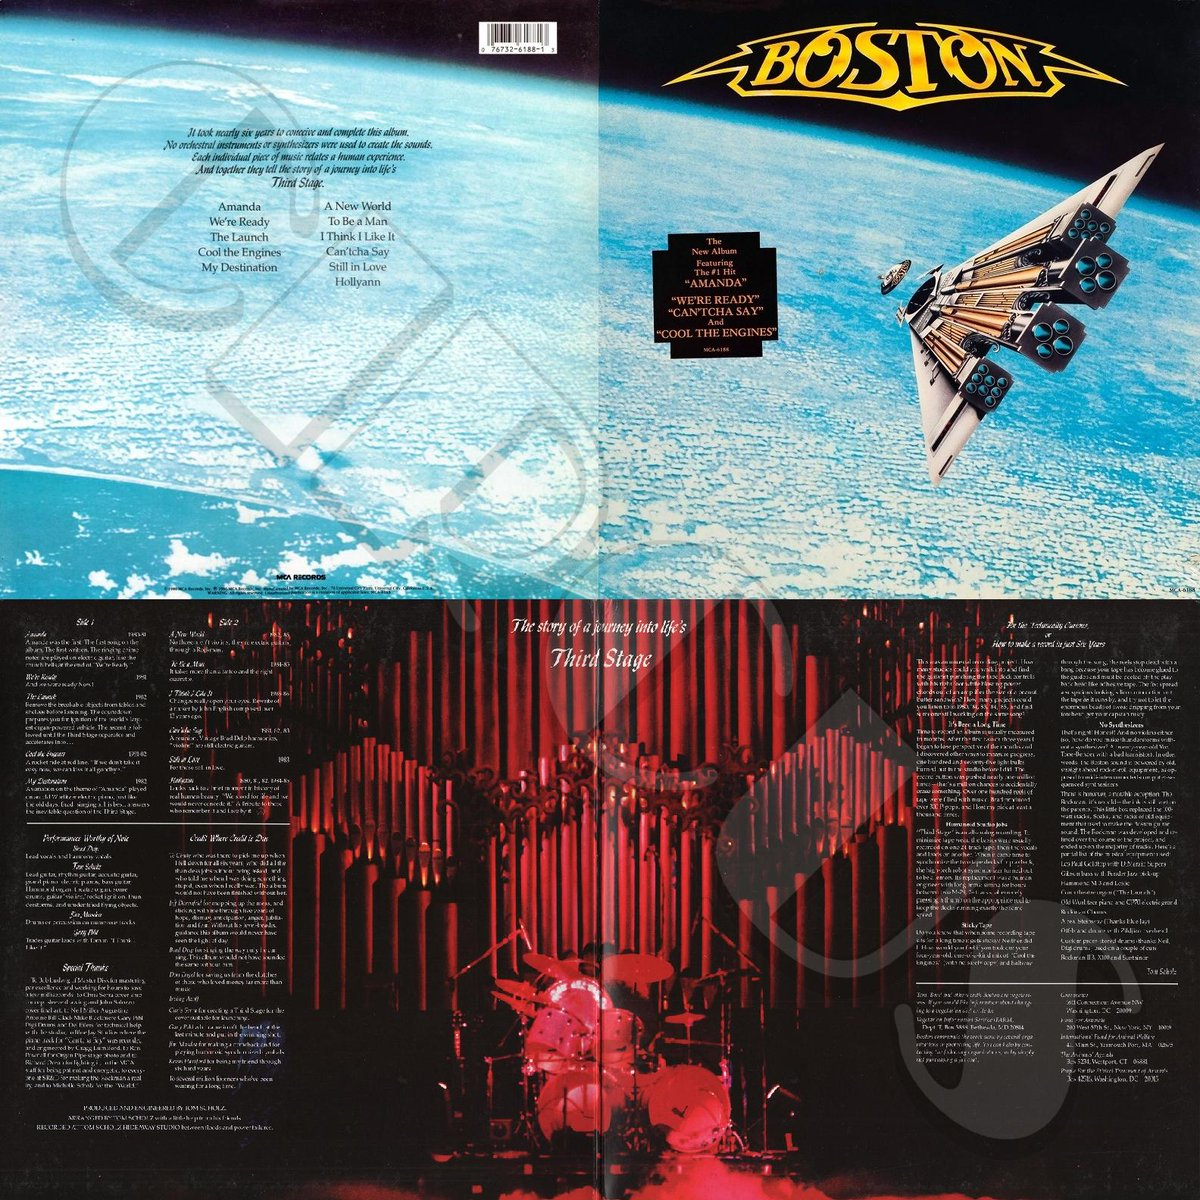 Sep. 23, 1986: #Boston released their #ThirdStage record.  In The Studio  https://t.co/FCamnRXfkD  🛸 Amanda♥️We're Ready♦️Cool The Engines♣️I Think I Like It♠️Hollyann  🖥️ https://t.co/ISW2iZZoox  #rock #music #OTD  = https://t.co/dMW5x1k0FY =  Rate this from 1–10. https://t.co/xVn8H8m3cK